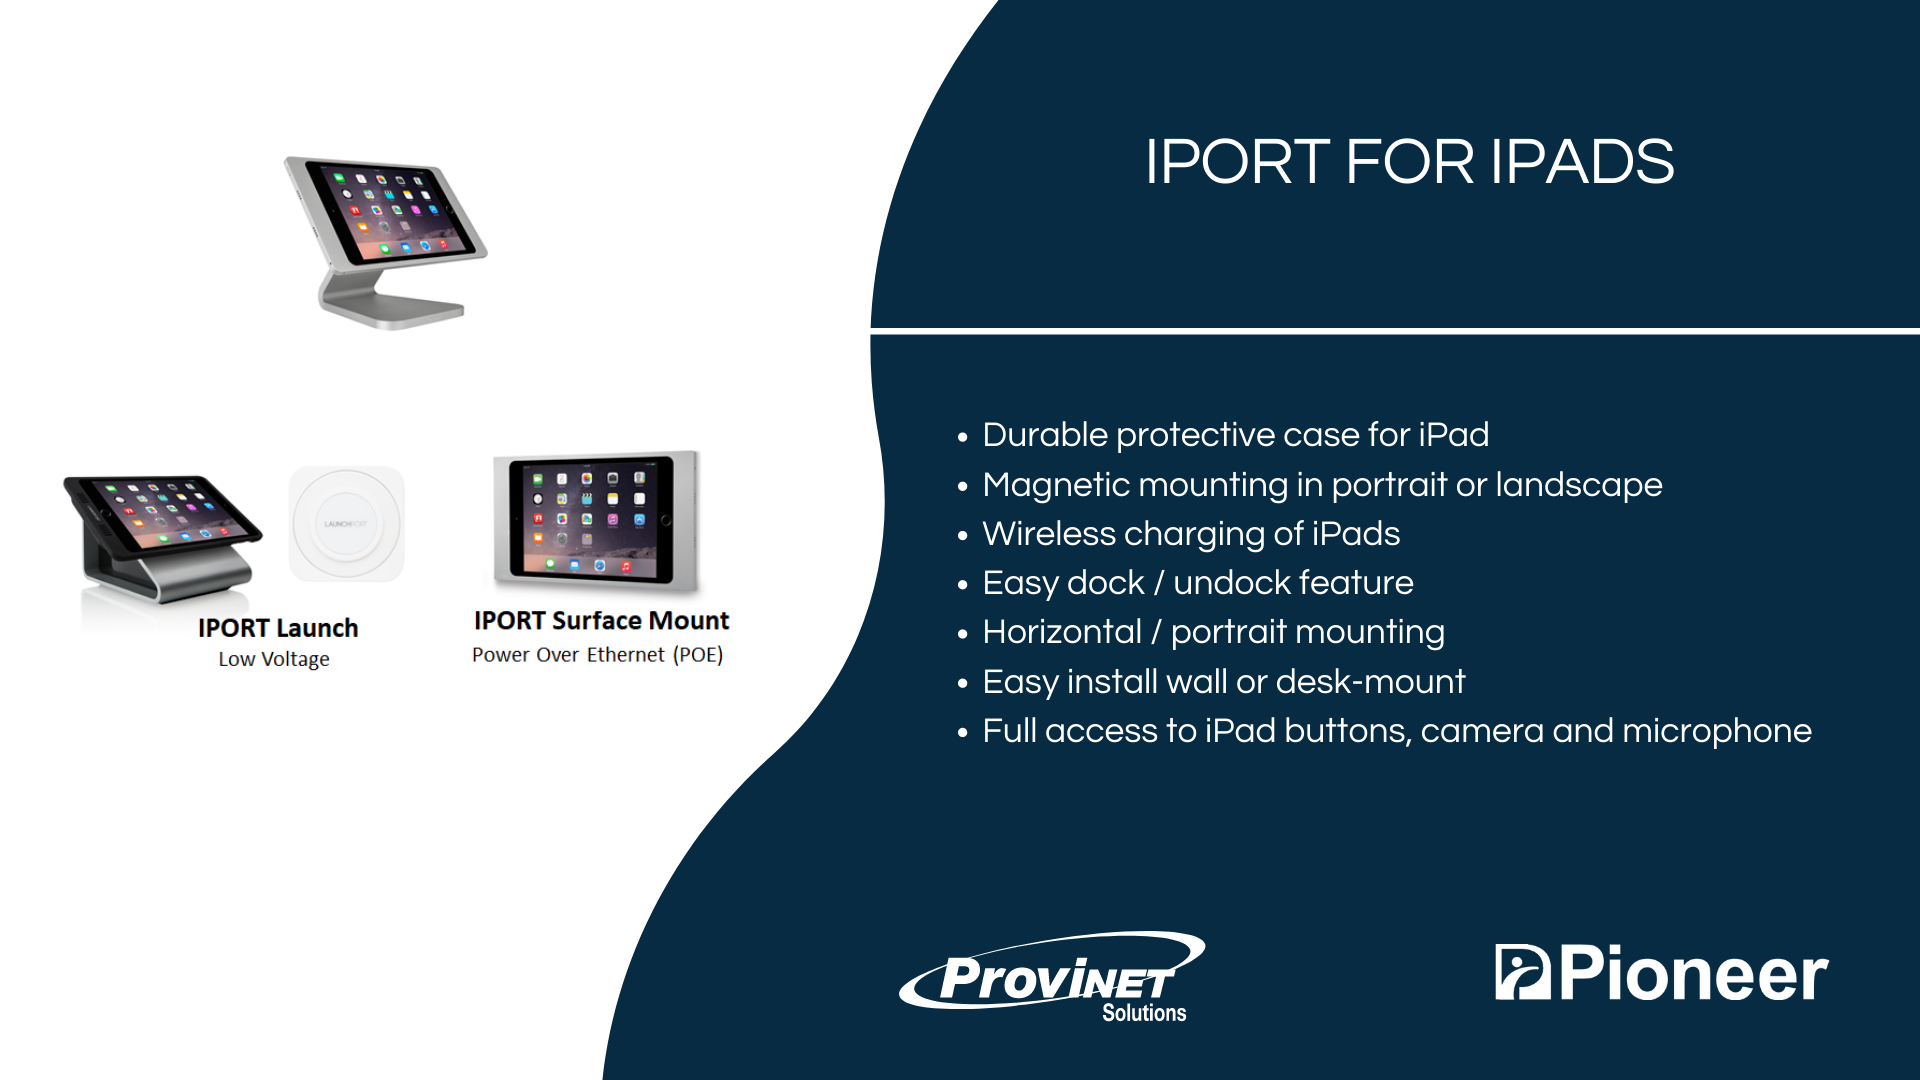 IPORT for iPads